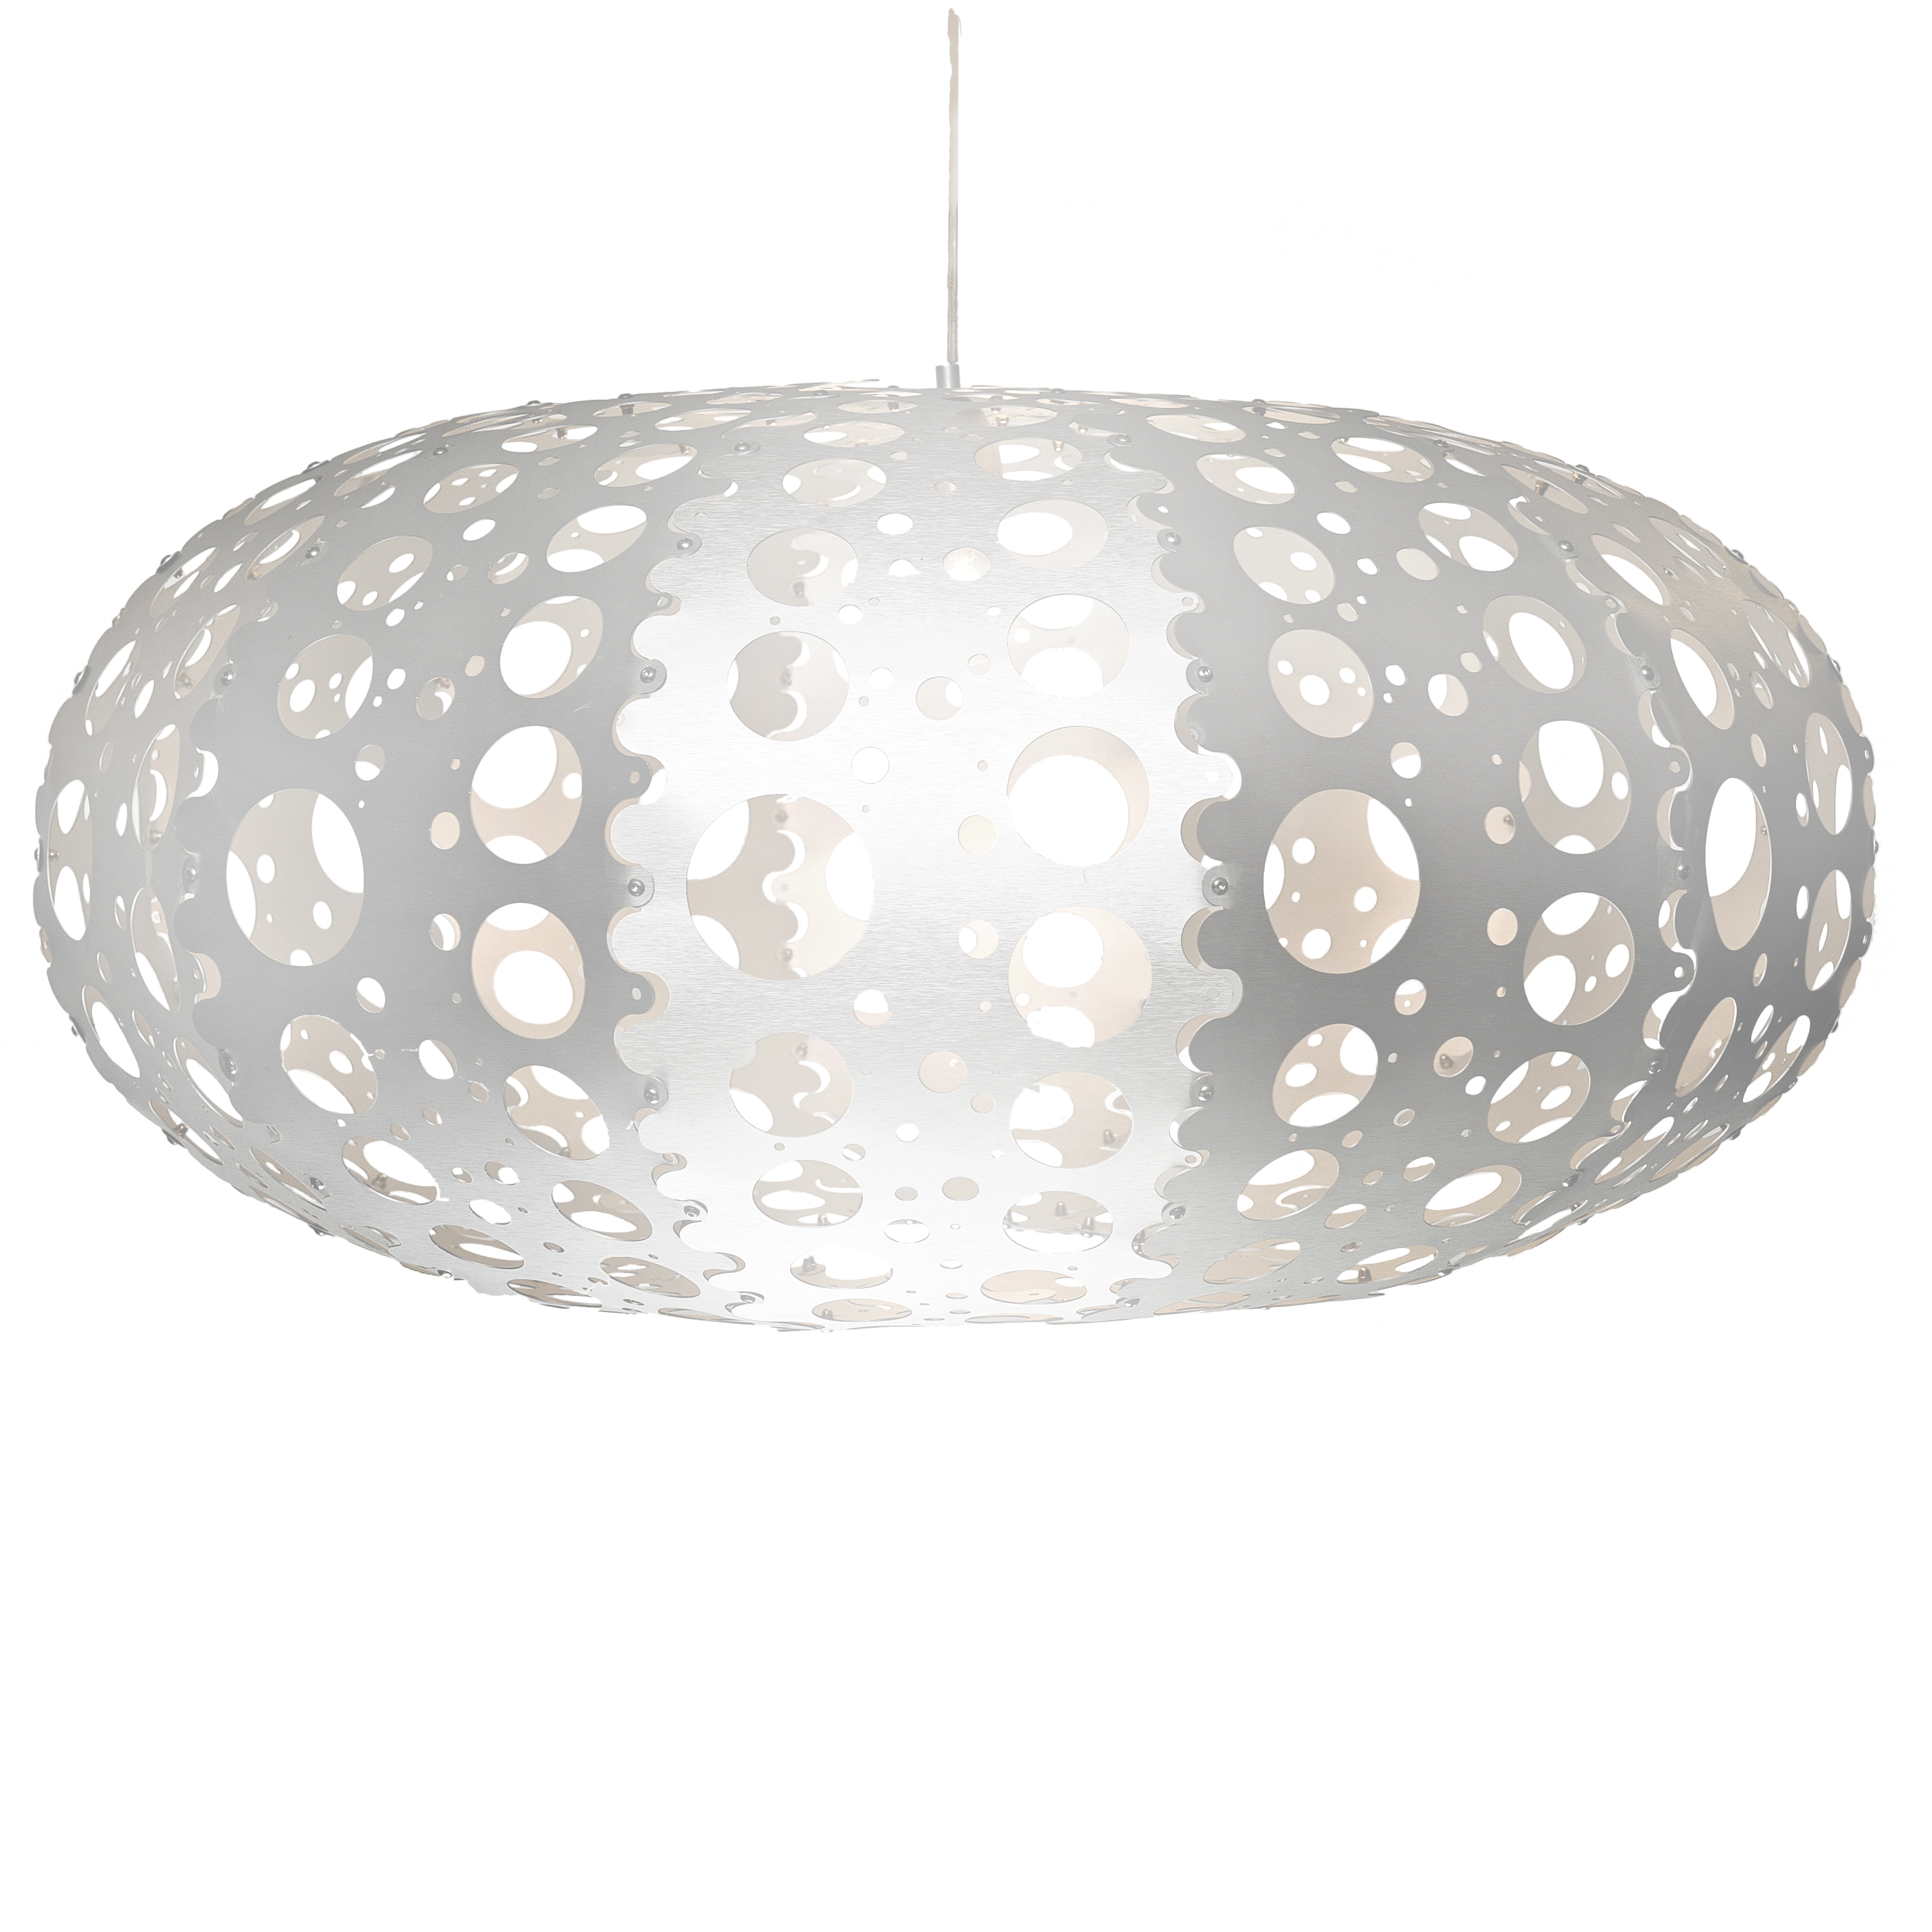 zinio danielles rustic media the pendant tom modern and no giant house cornwall as raffield steam home featured urchin pdf country danielle in s inside blogs chandelier bent living